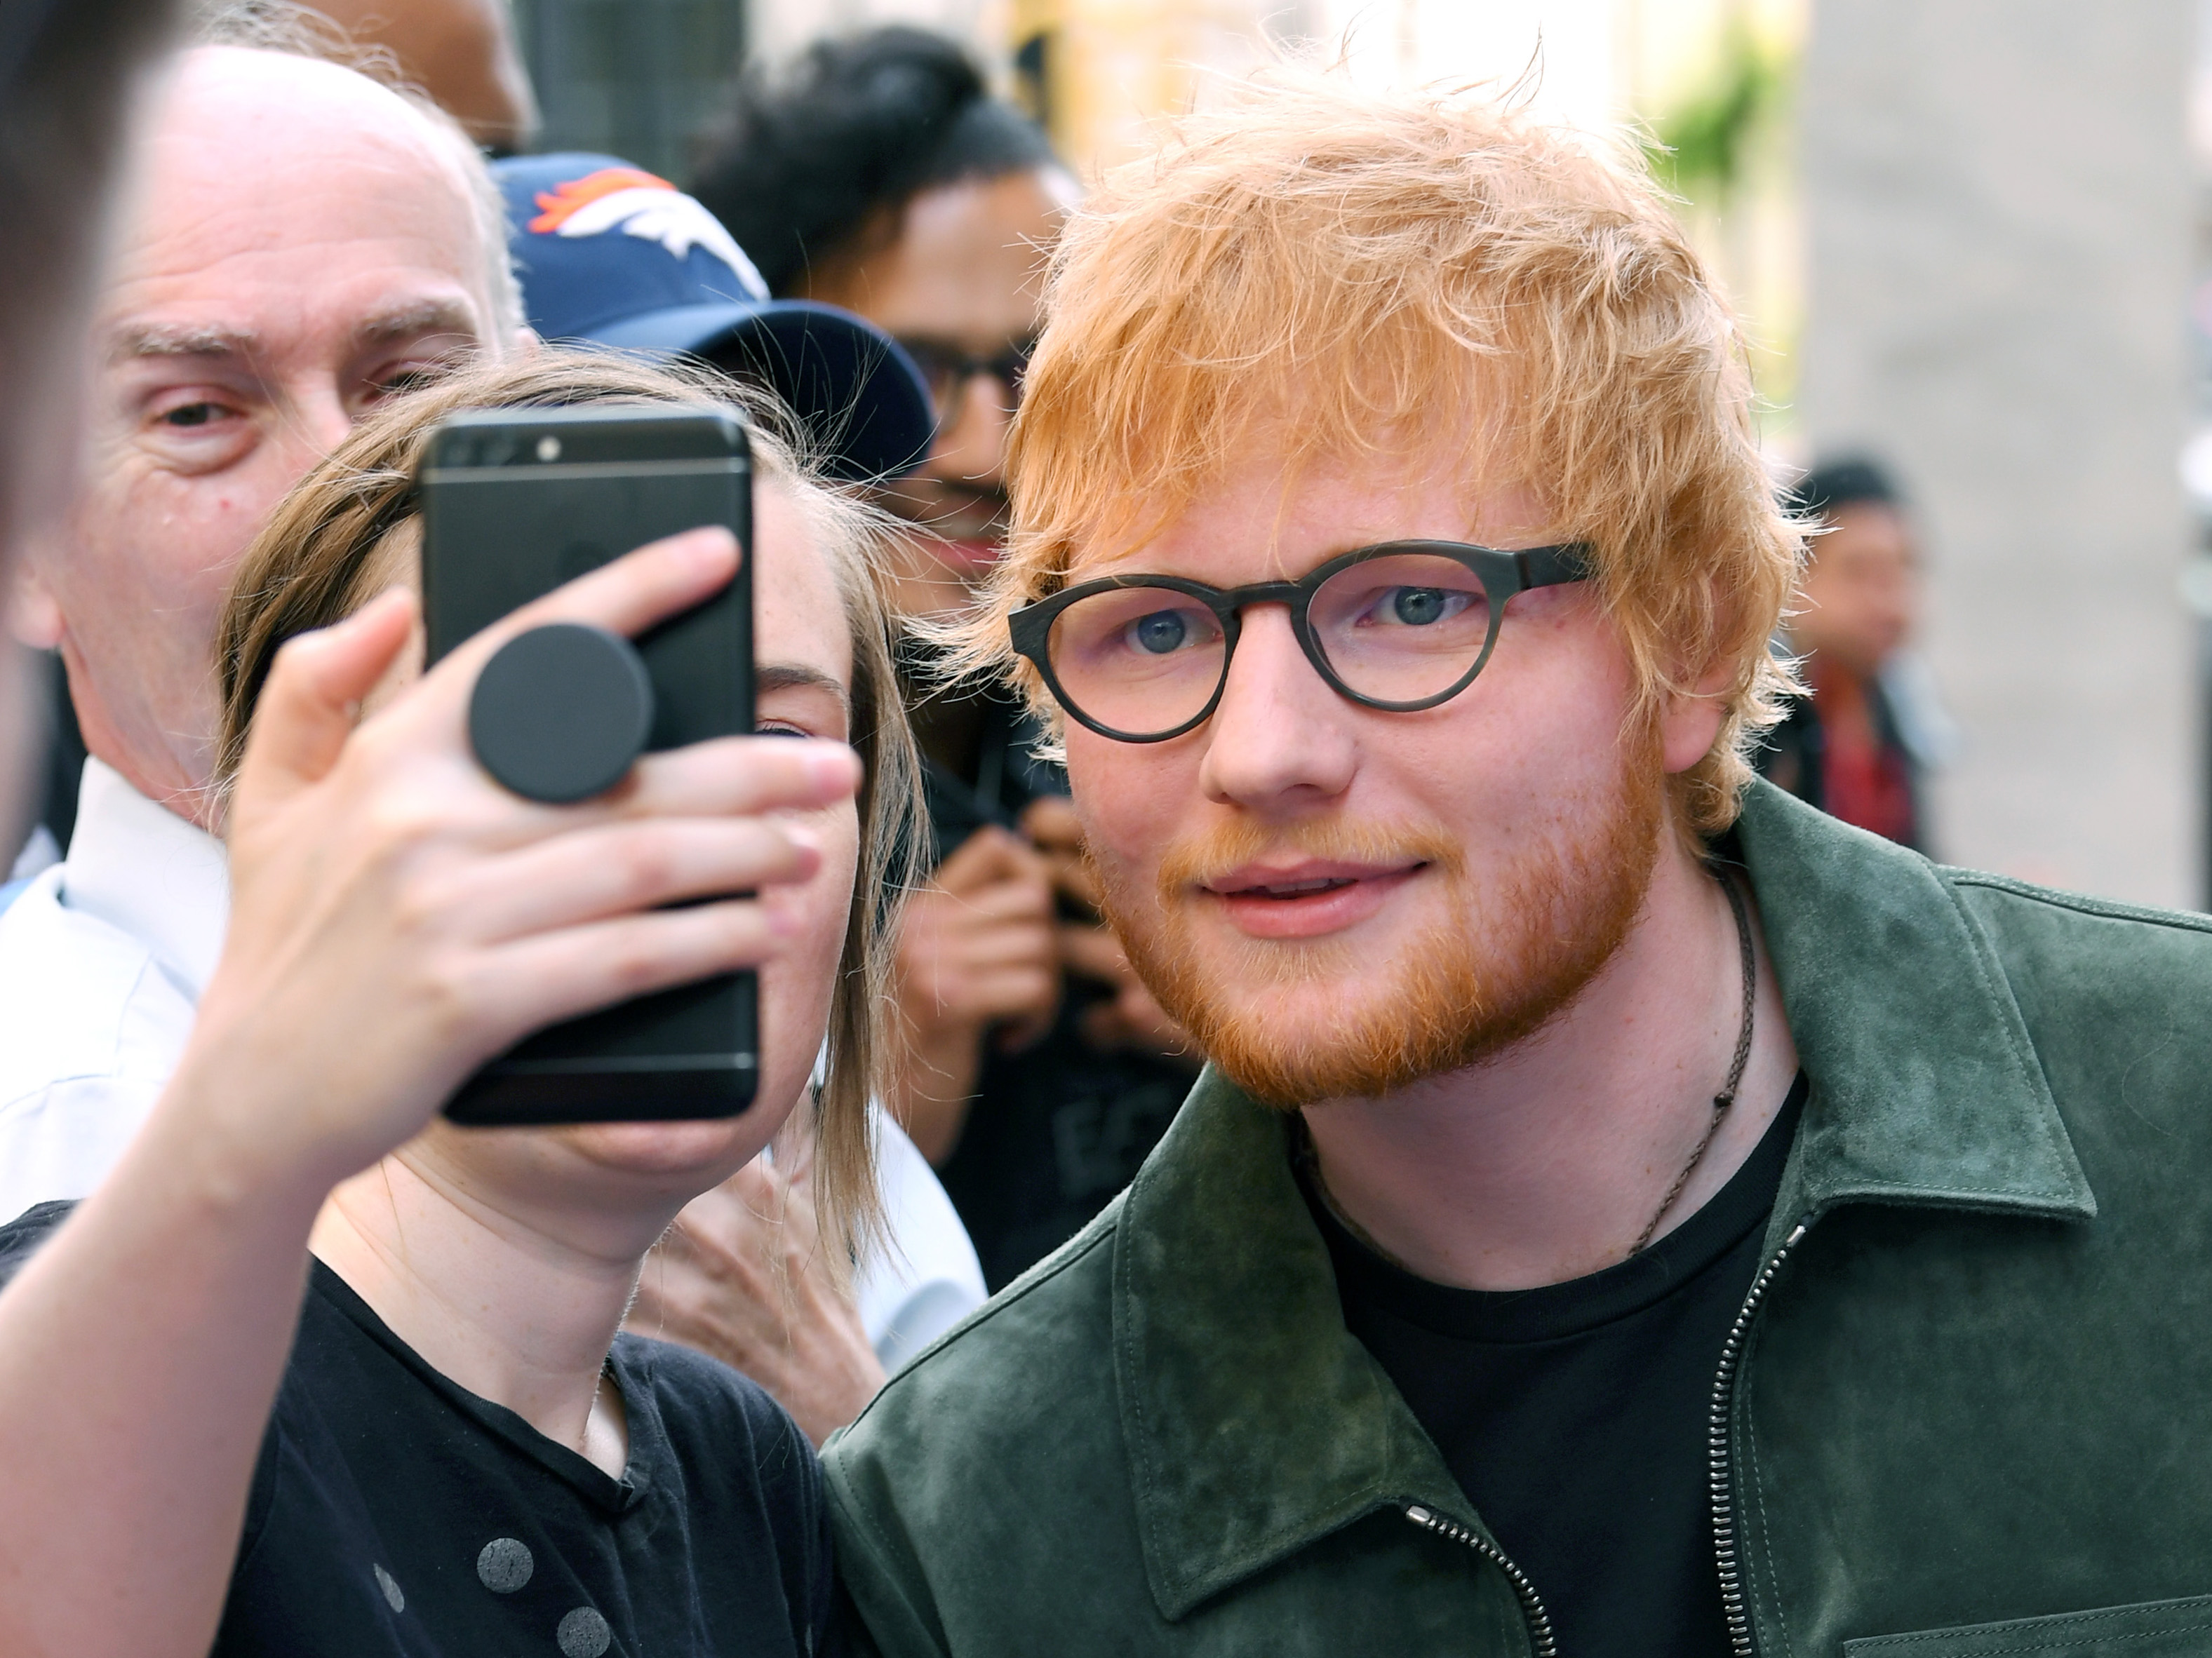 A Lawsuit Against Ed Sheeran Depends on One Against Led Zeppelin